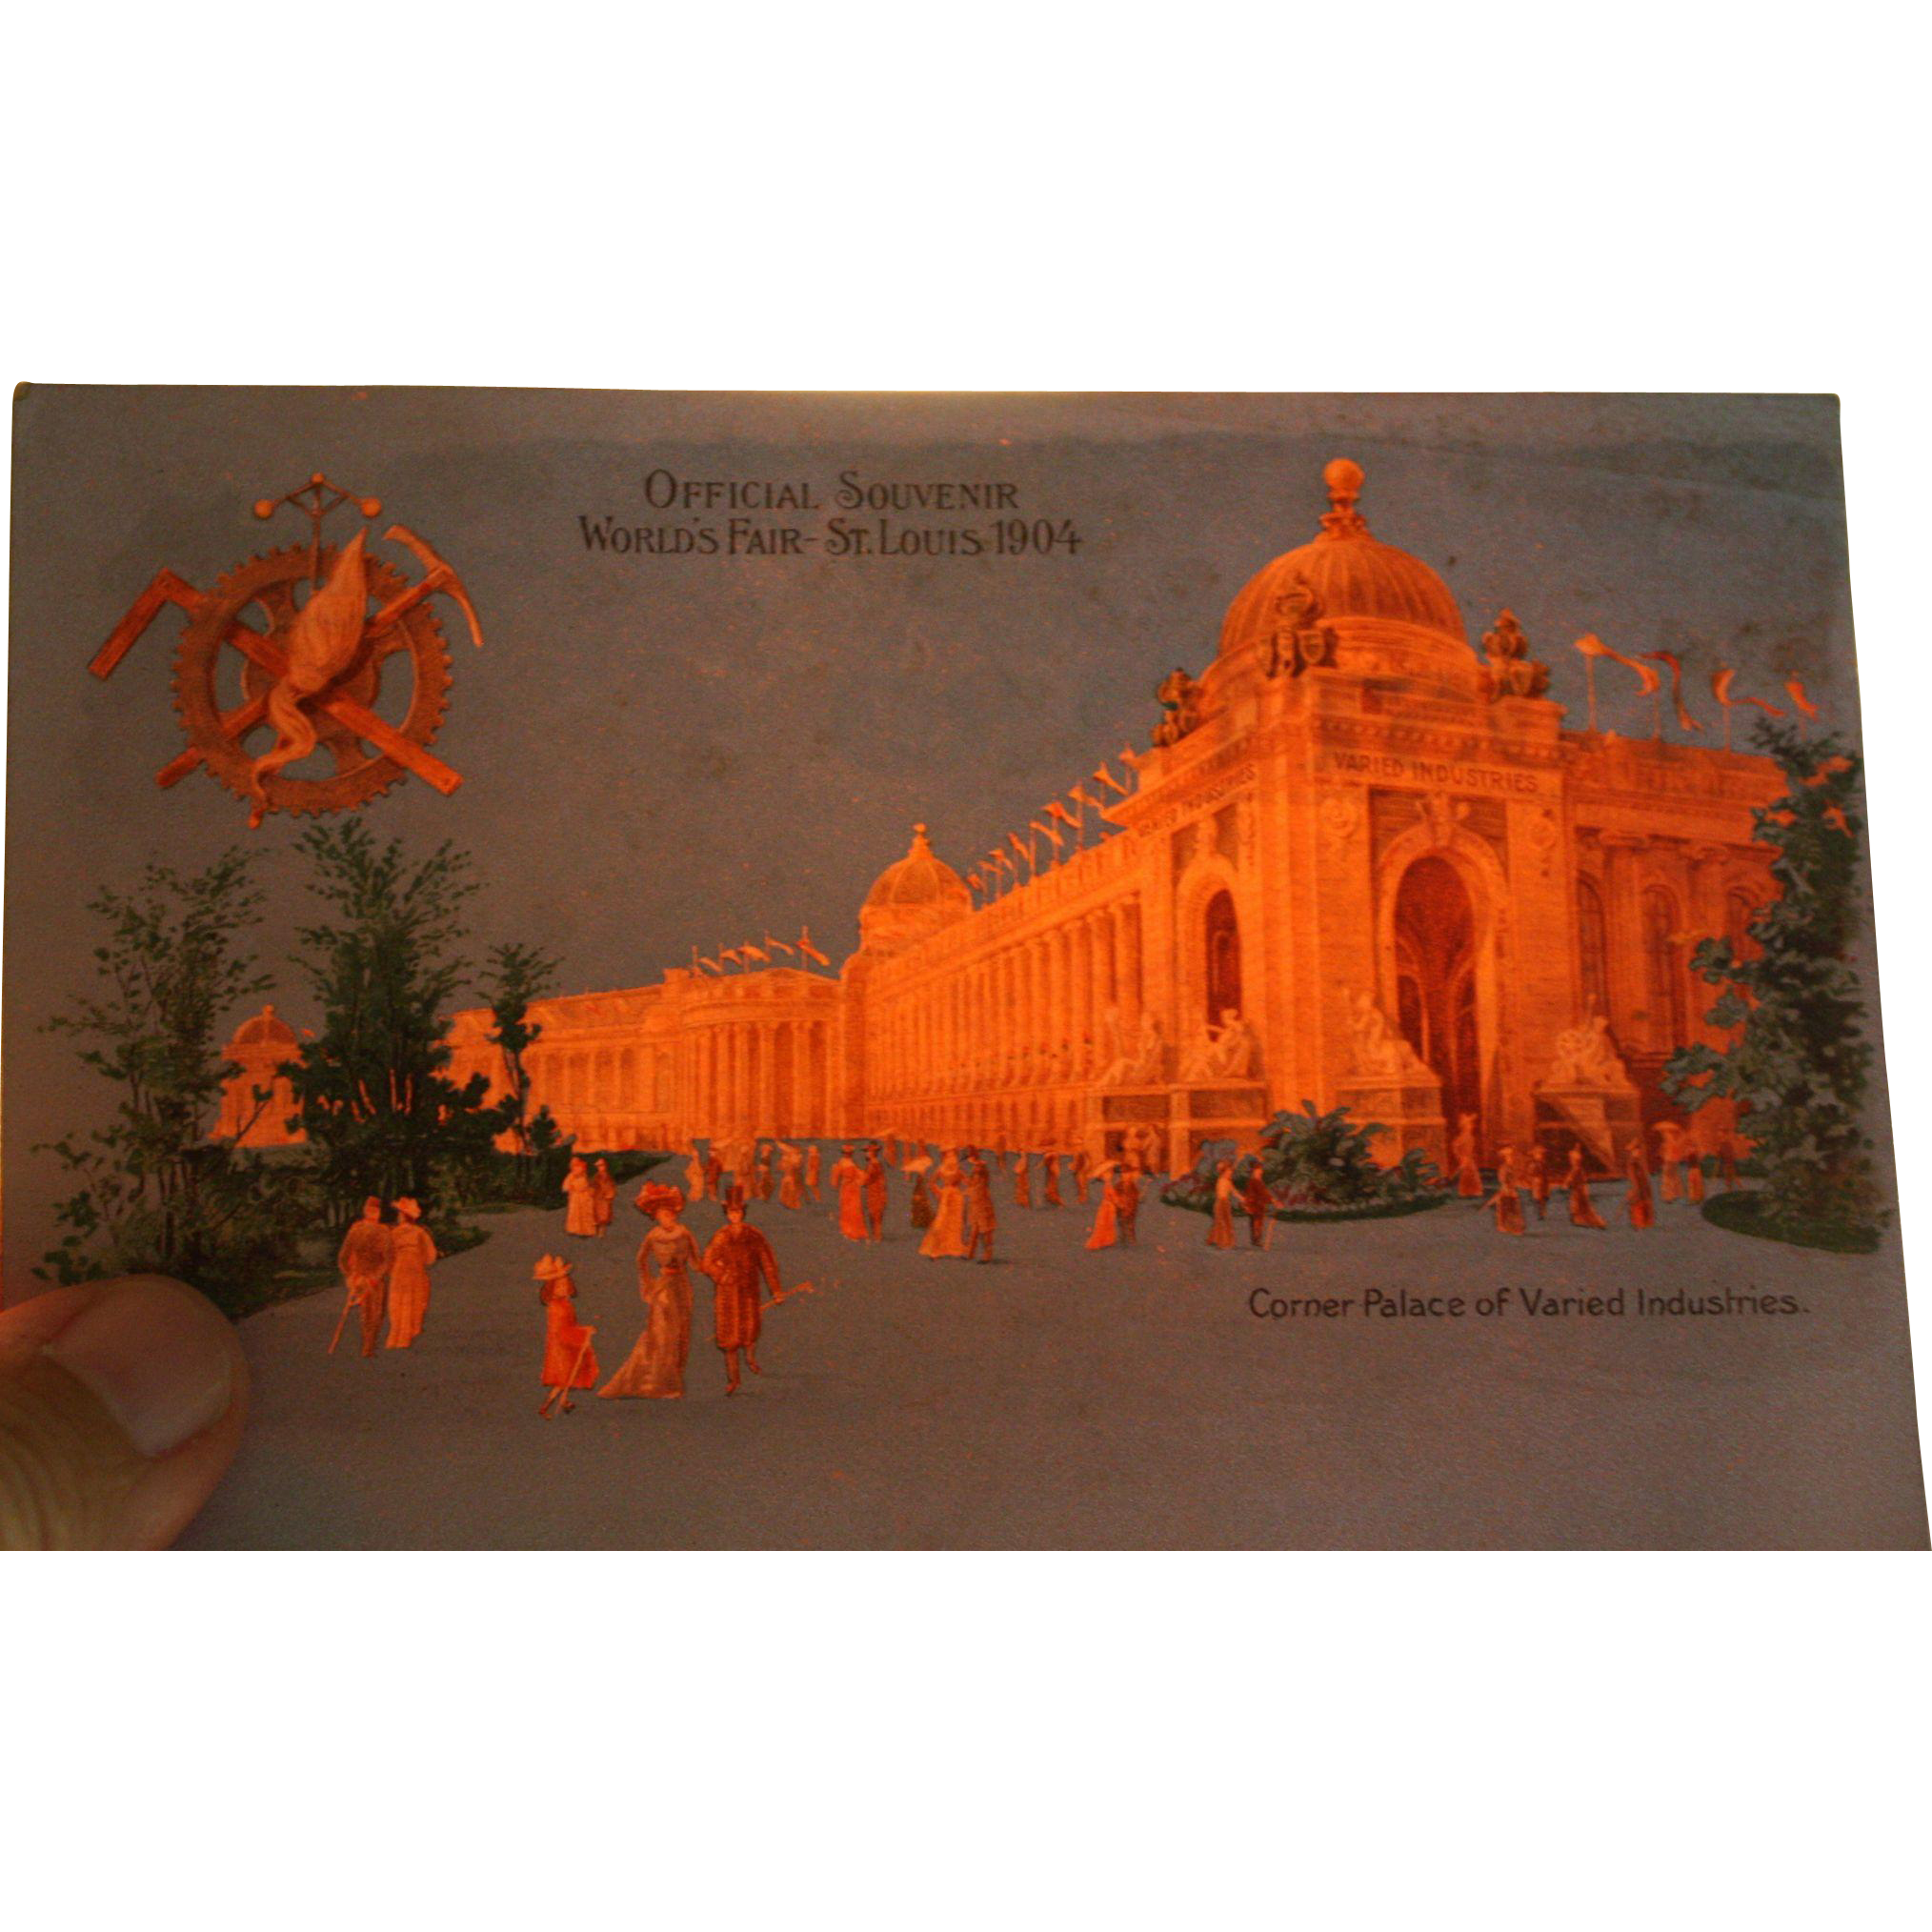 Hold To The Light 1904 St Louis World's Fair Corner Palace of Varied Industries Vintage Postcard